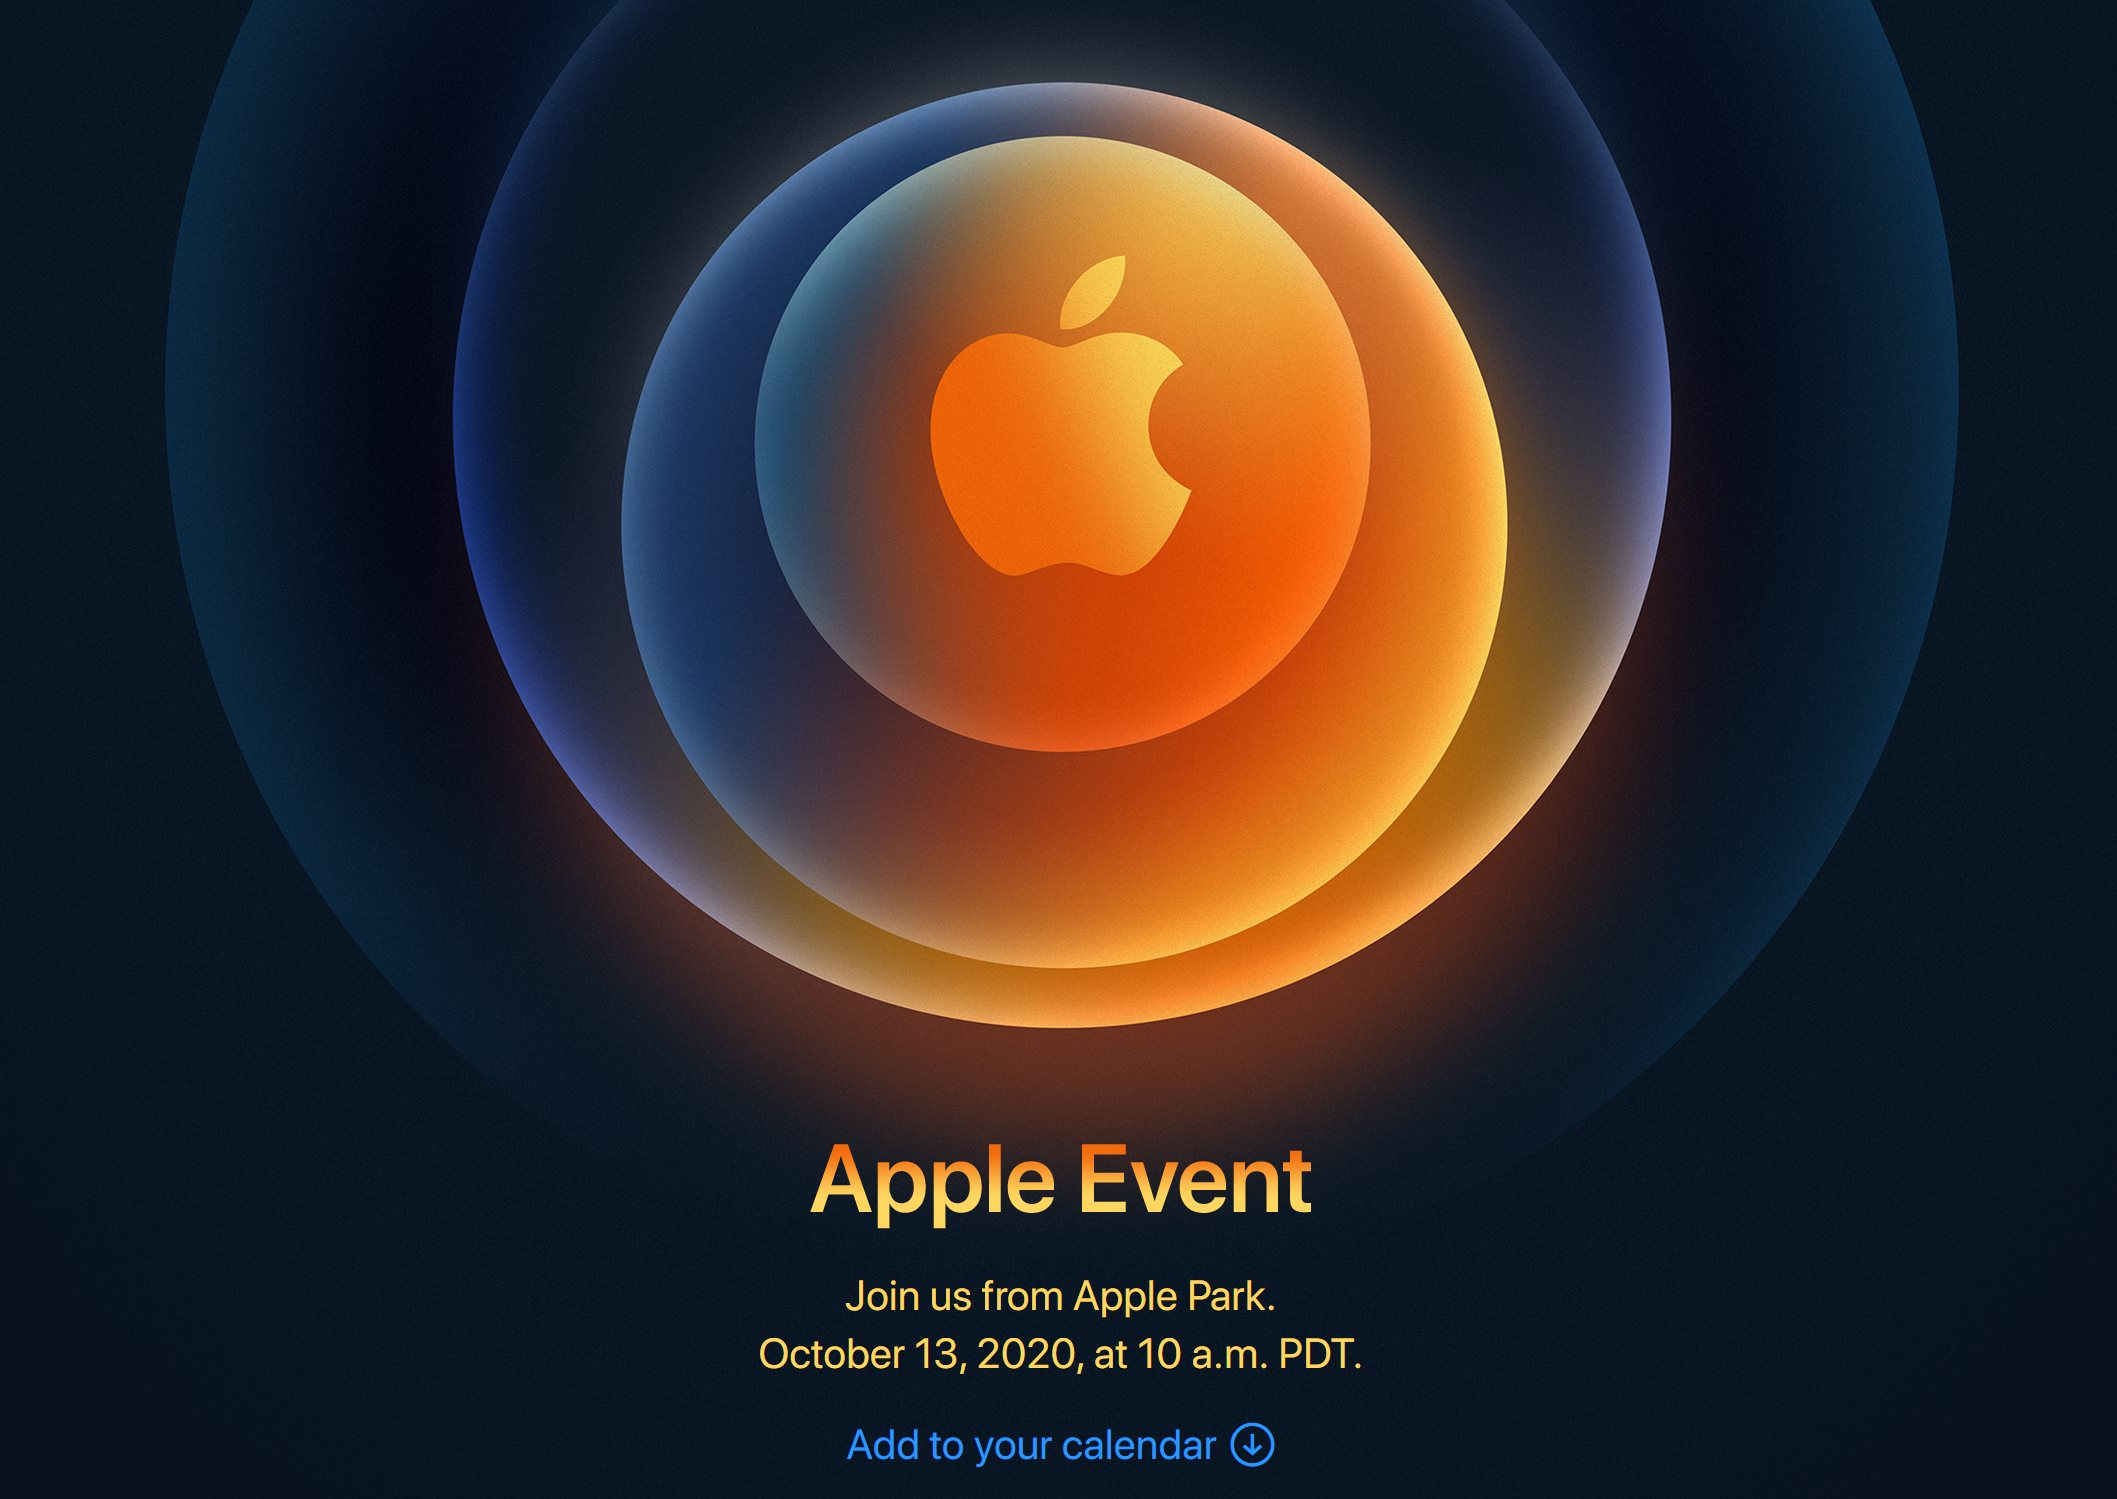 Apple iPhone 12 event scheduled for Tuesday, 13th October - Apple - News